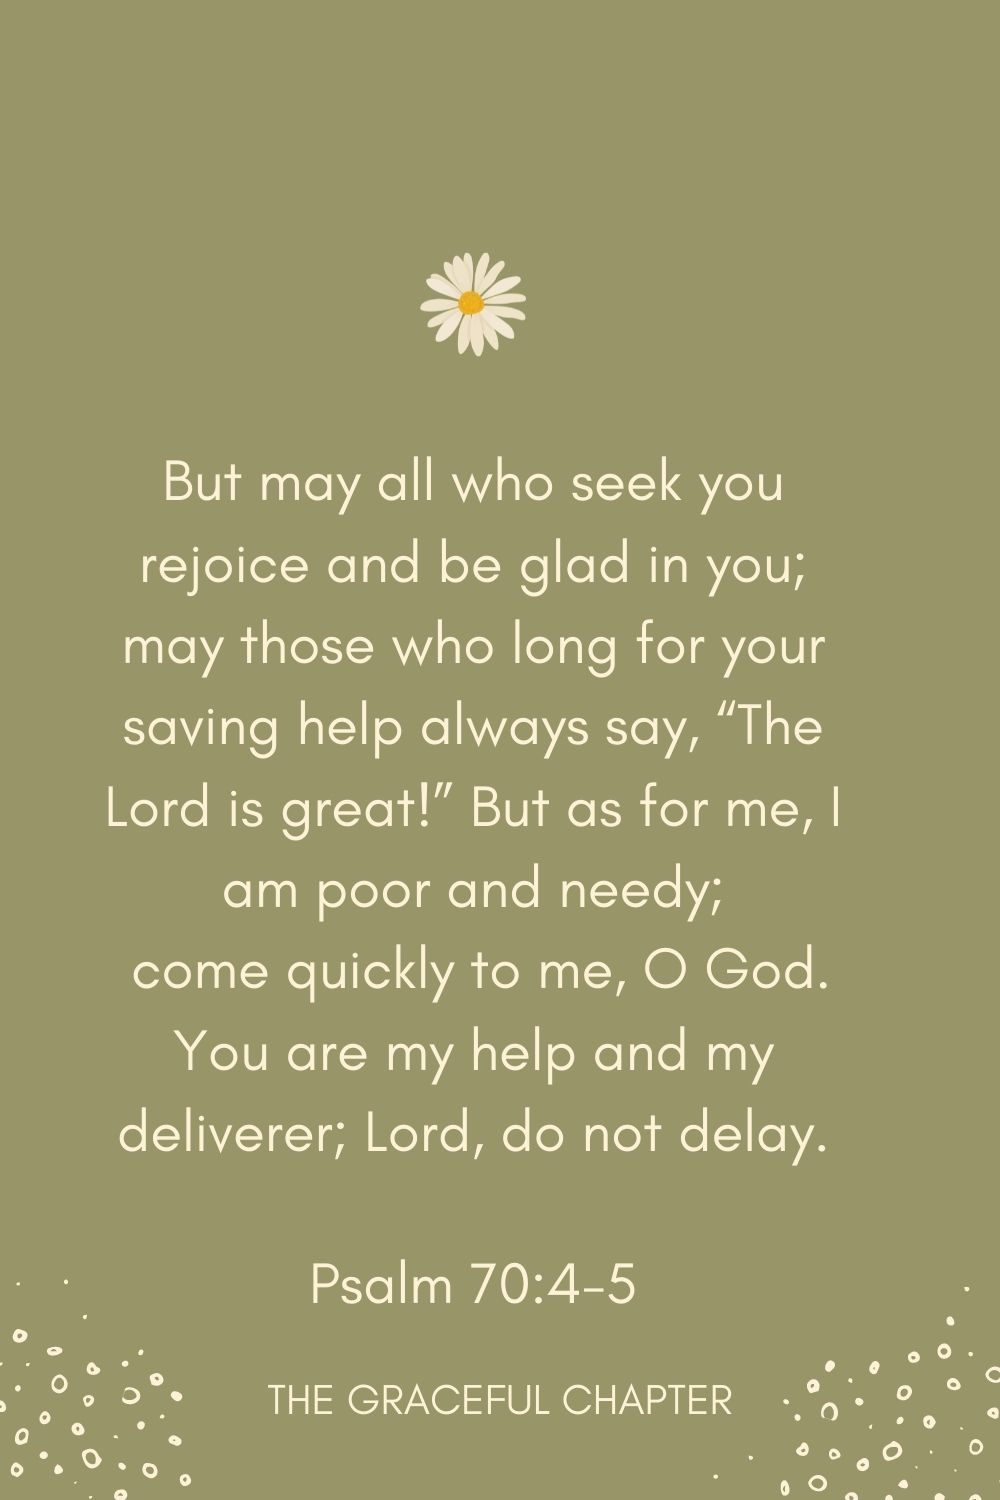 """But may all who seek you rejoice and be glad in you; may those who long for your saving help always say, """"The Lord is great!"""" But as for me, I am poor and needy;  come quickly to me, O God. You are my help and my deliverer; Lord, do not delay. Psalm 70:4-5"""